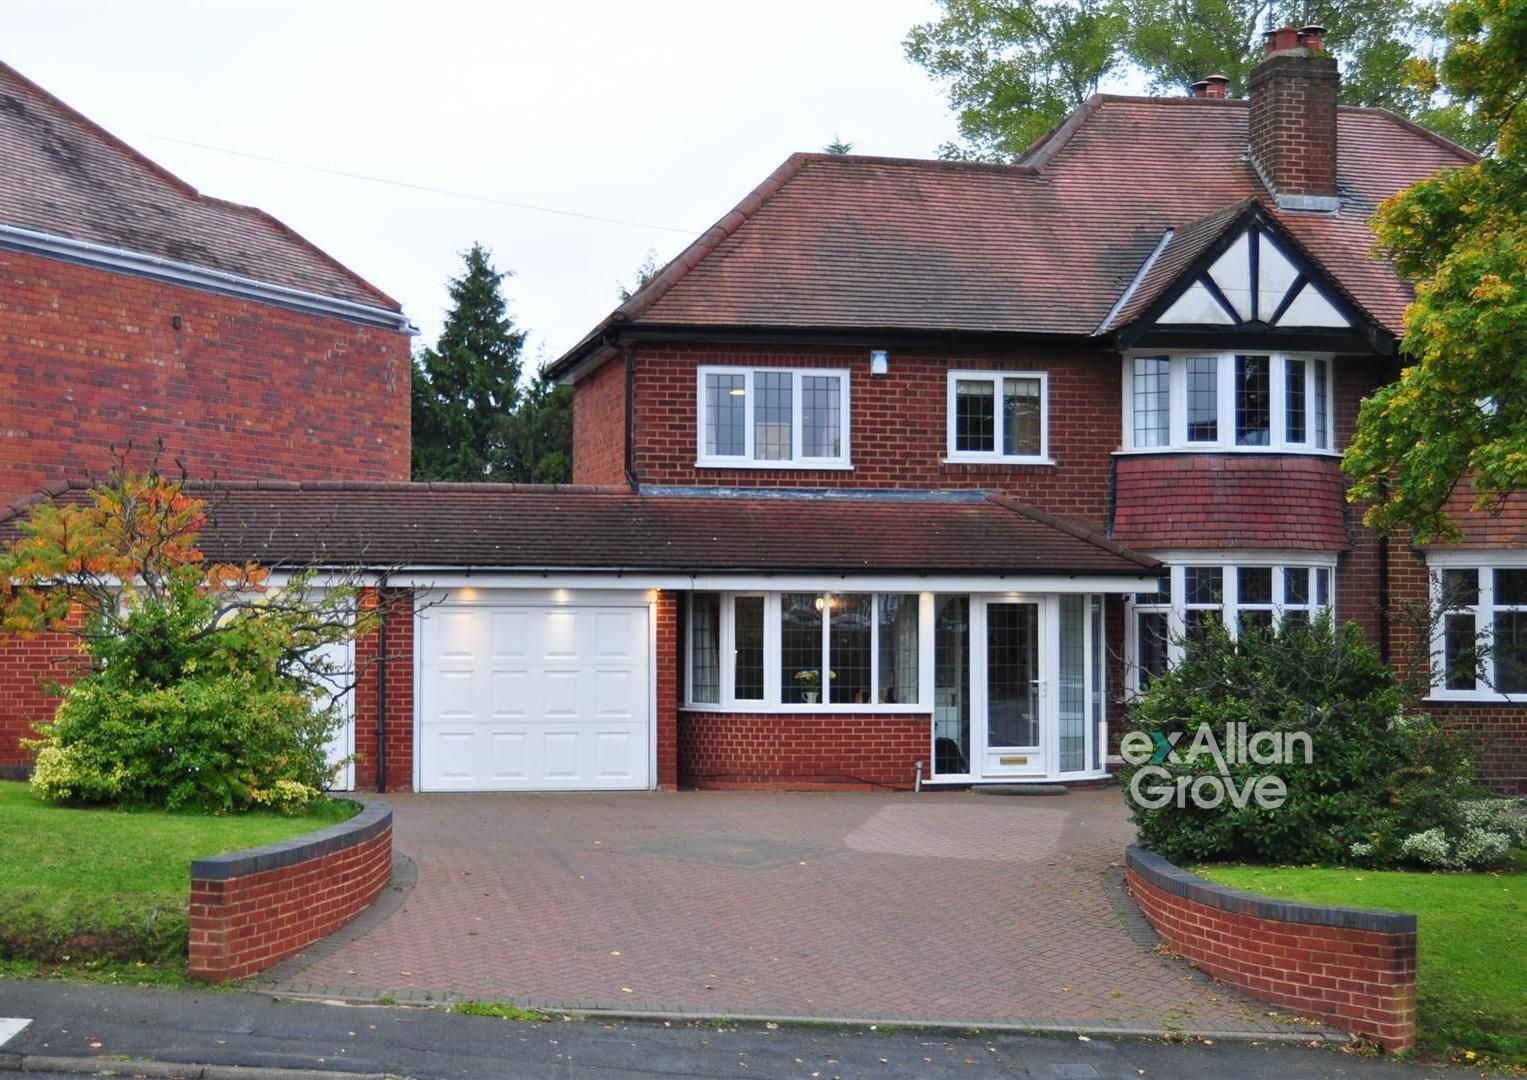 4 bed semi-detached for sale, B62